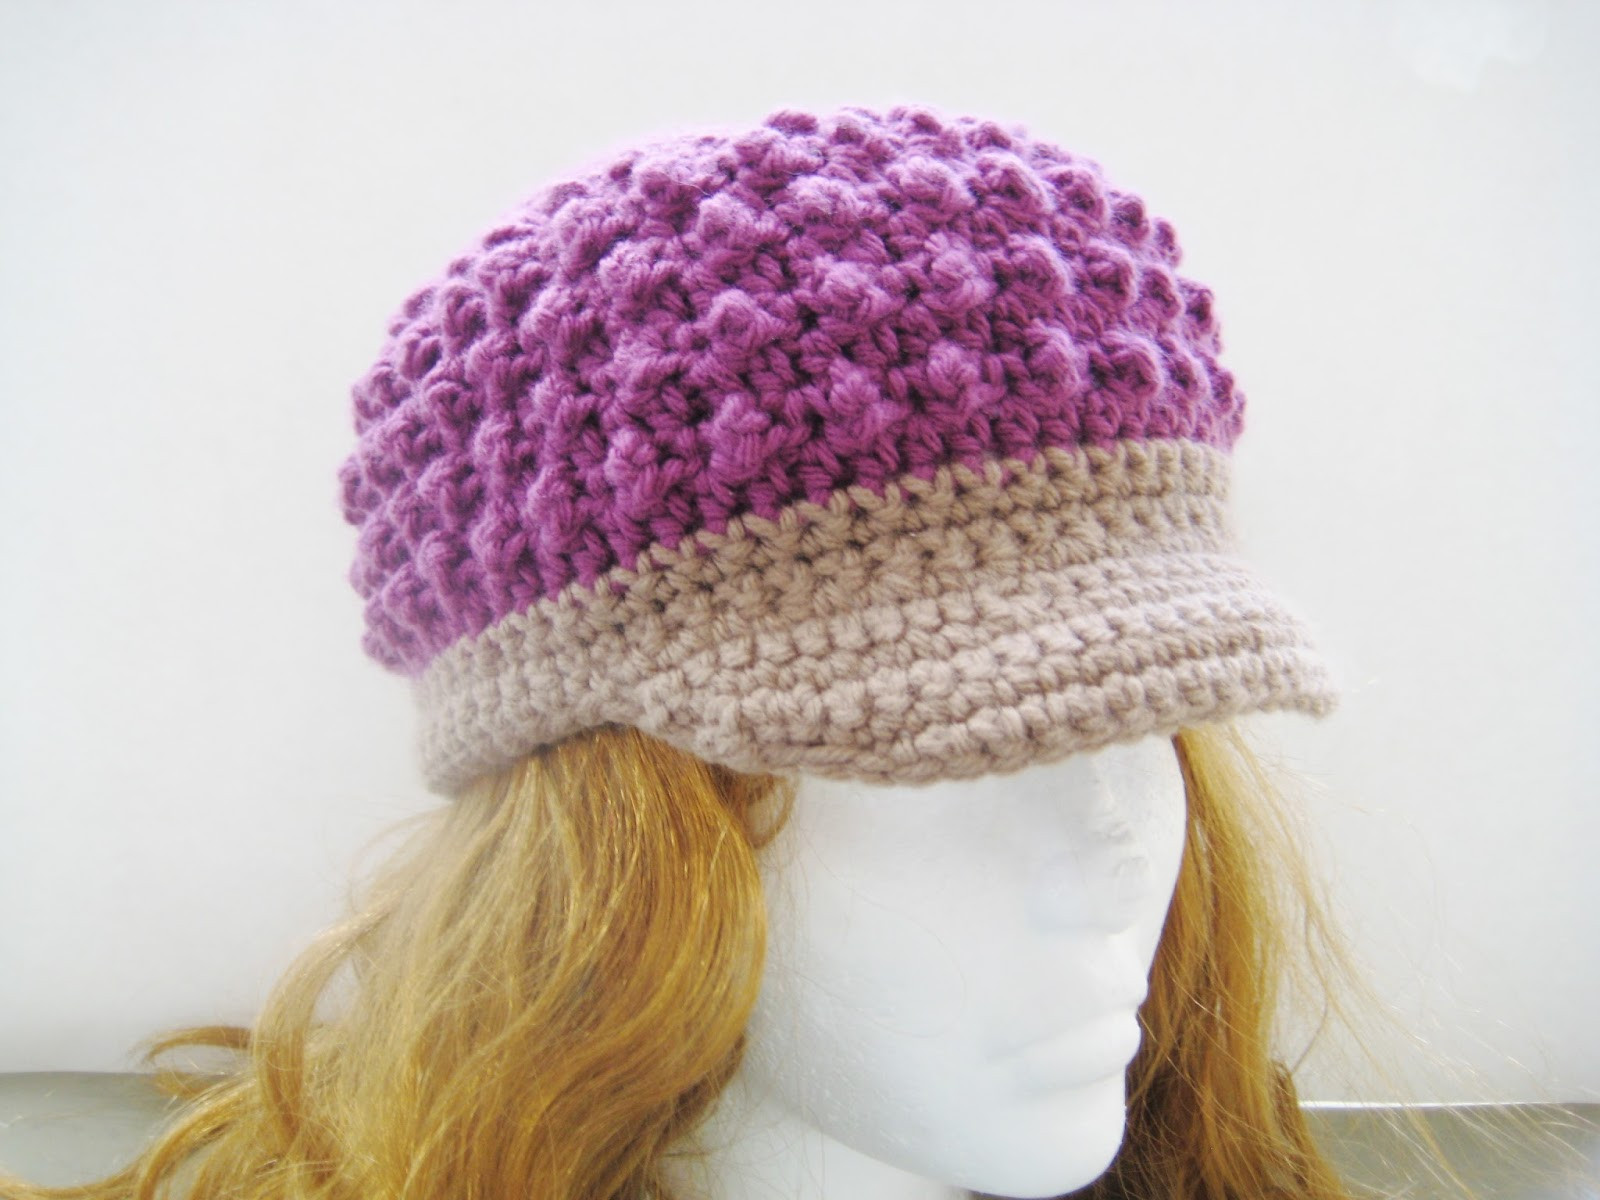 Crochet Beanie Pattern Awesome Crochet Dreamz Visor Beanie Crochet Pattern for Girls and Of Luxury 43 Pics Crochet Beanie Pattern